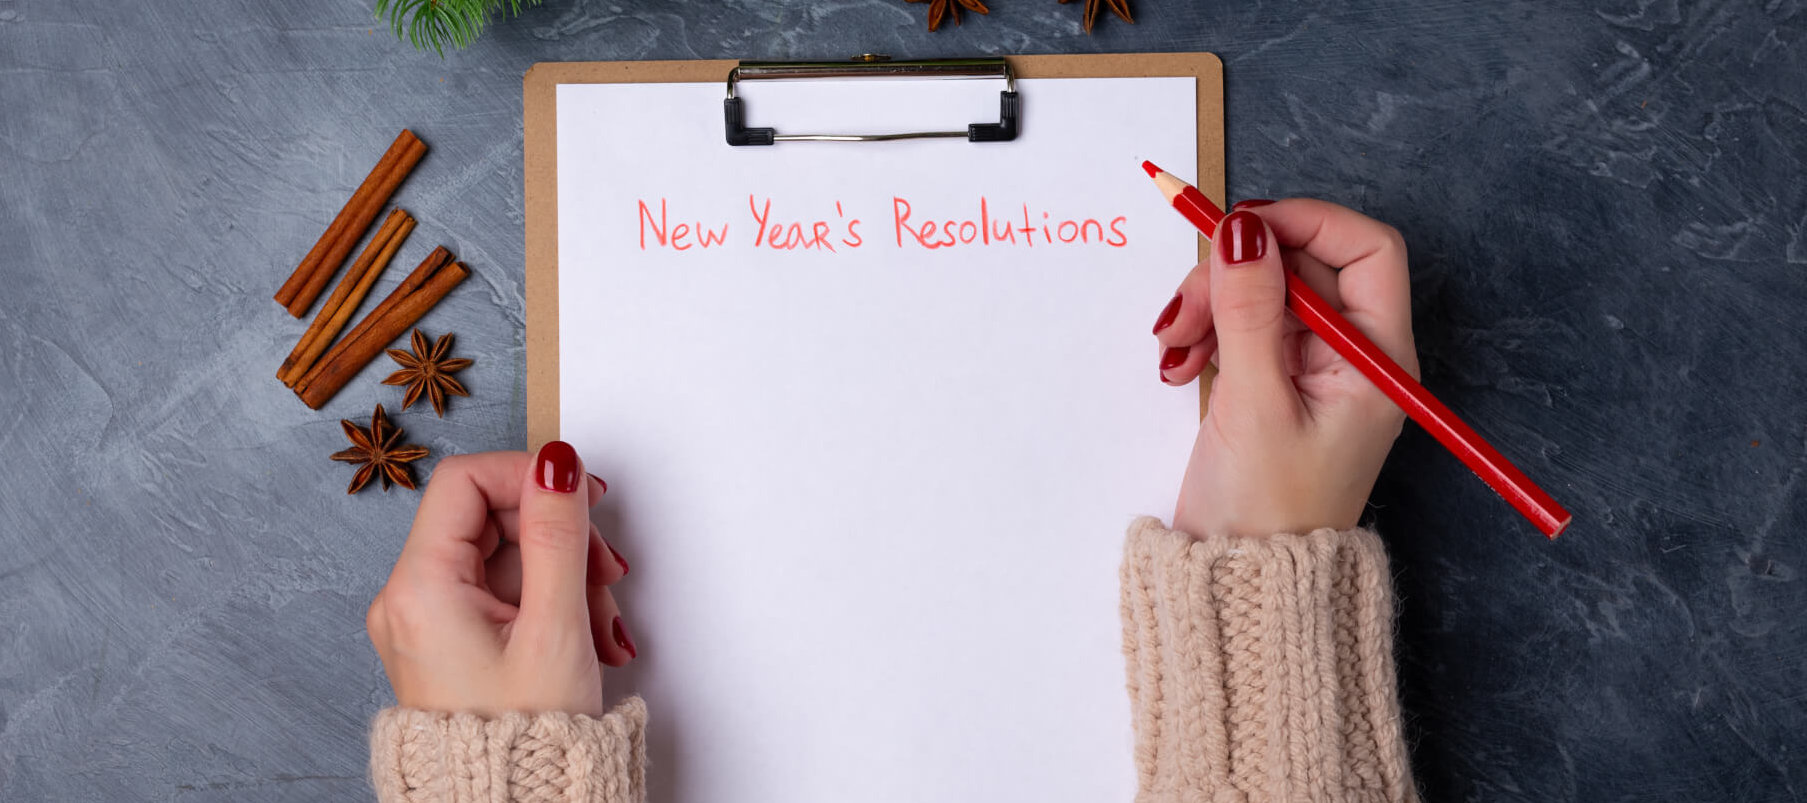 Woman hands ready to write new year's resolutions on blank list on dark background. Flat lay. Top view. New year concept. Target success concept. Personal goals.